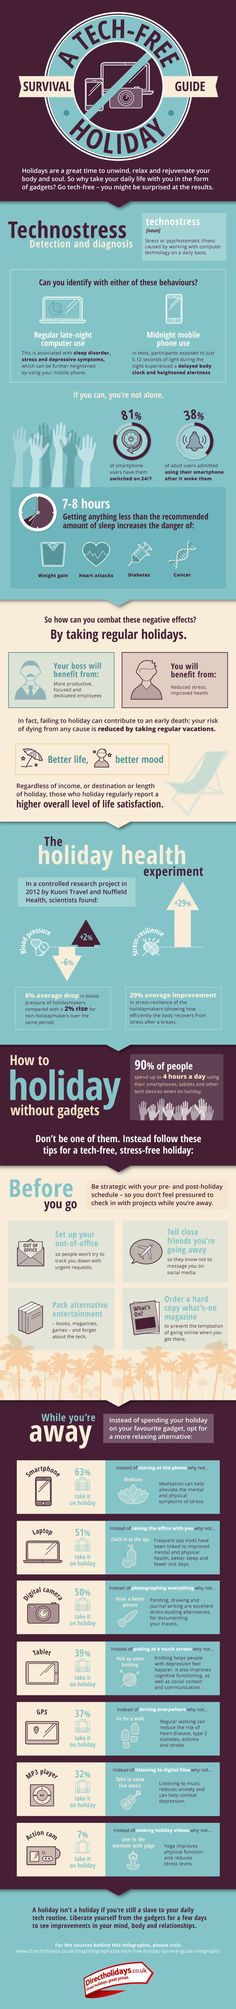 A Tech-Free Holiday Survival Guide #infographic